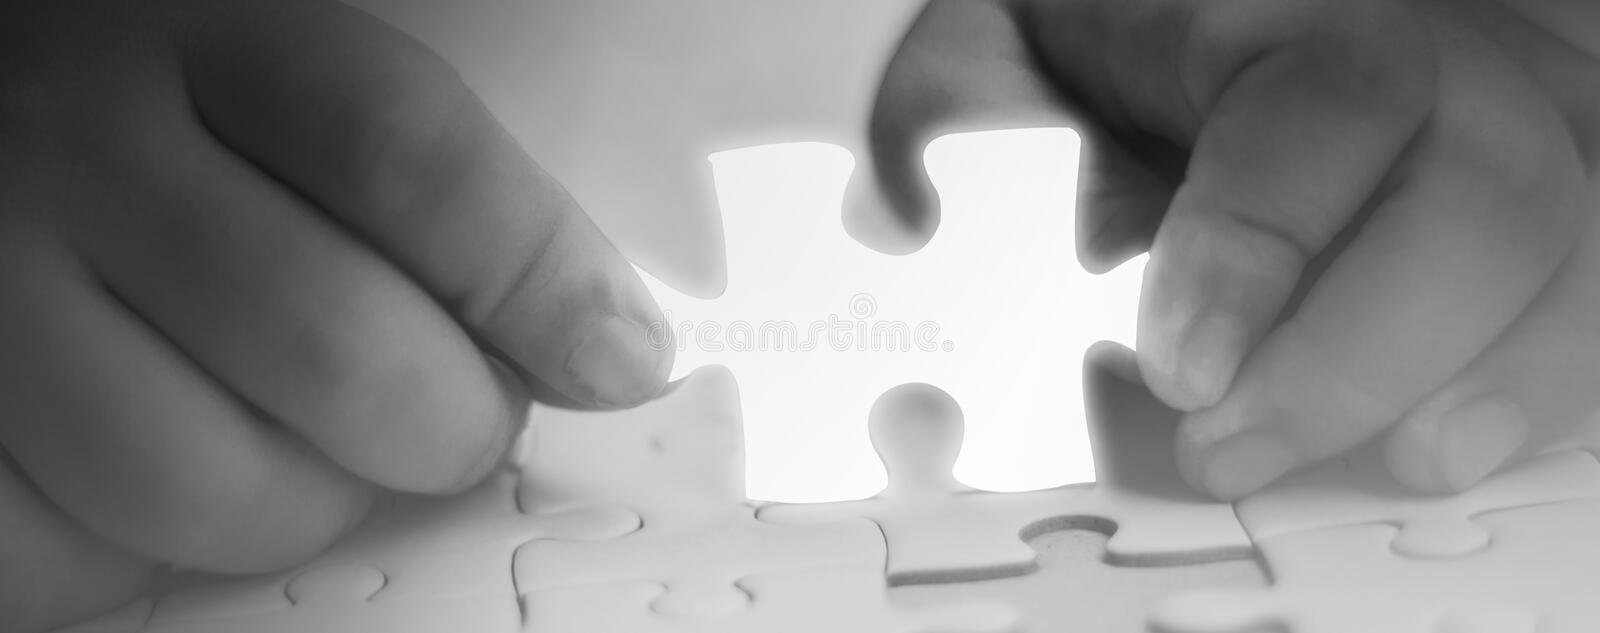 Two hands holding jigsaw puzzle piece glowing white glow piece missing components,Abstract concept business with success,goals and stock images